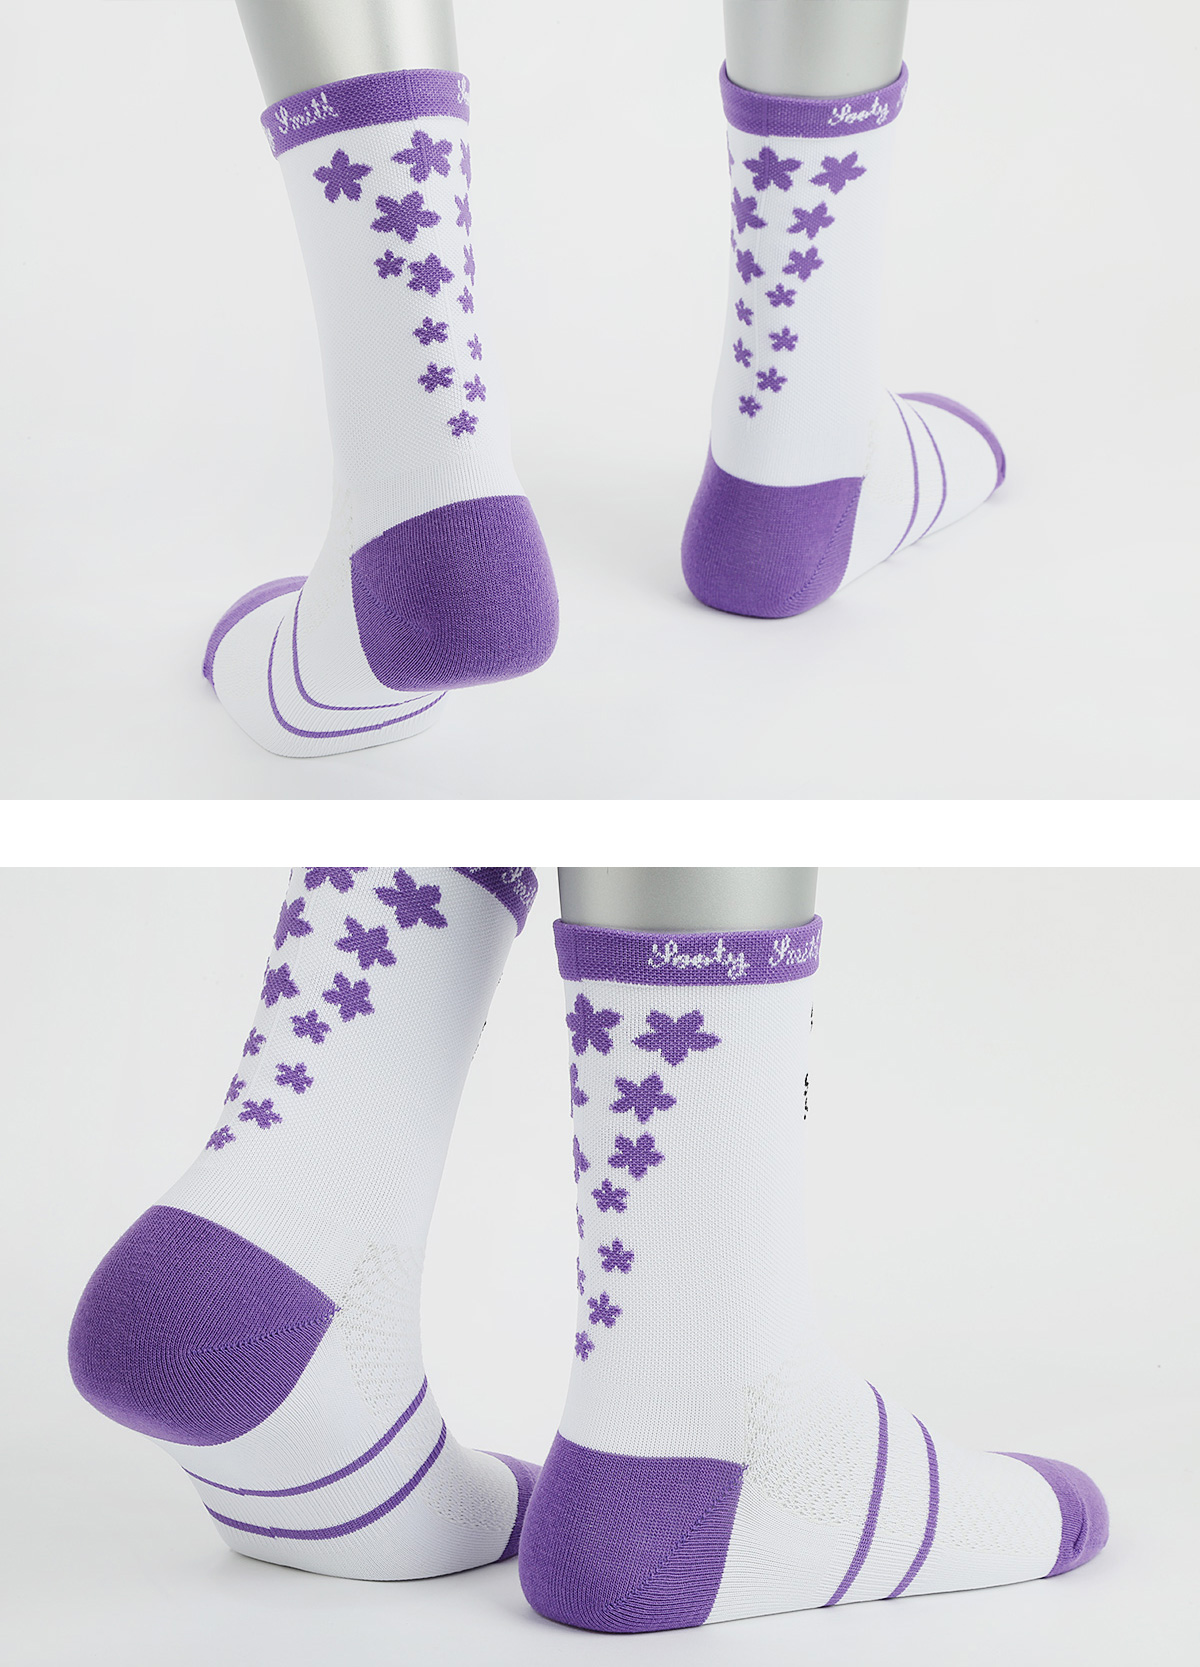 (women only) Pedaler Crew Socks: Elegant socks